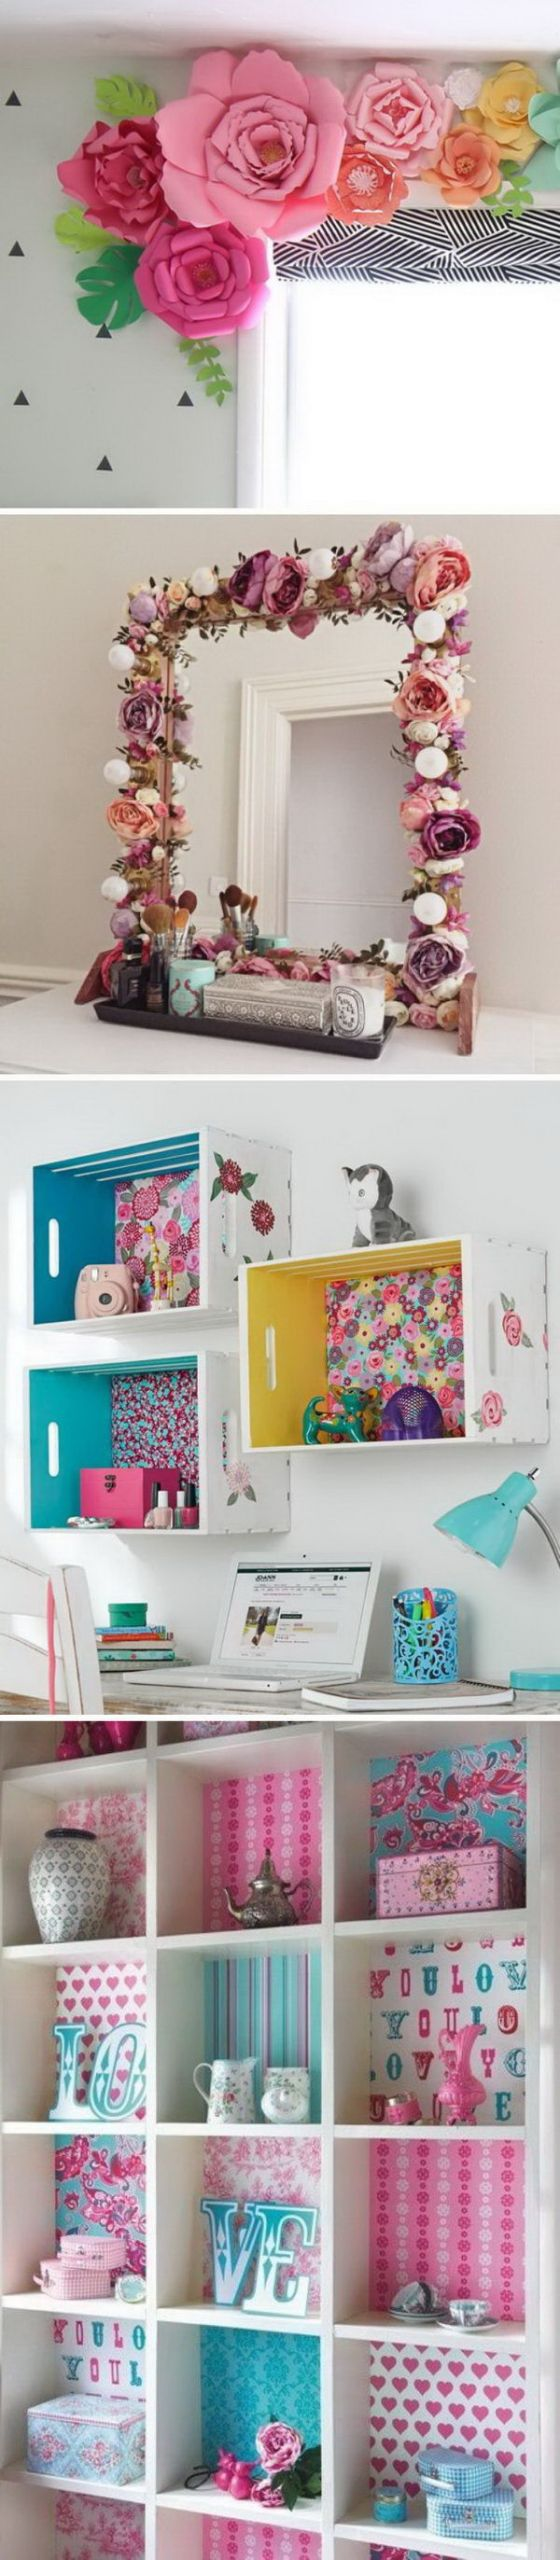 DIY Room Decorations For Girls  20 Awesome DIY Projects To Decorate A Girl s Bedroom Hative